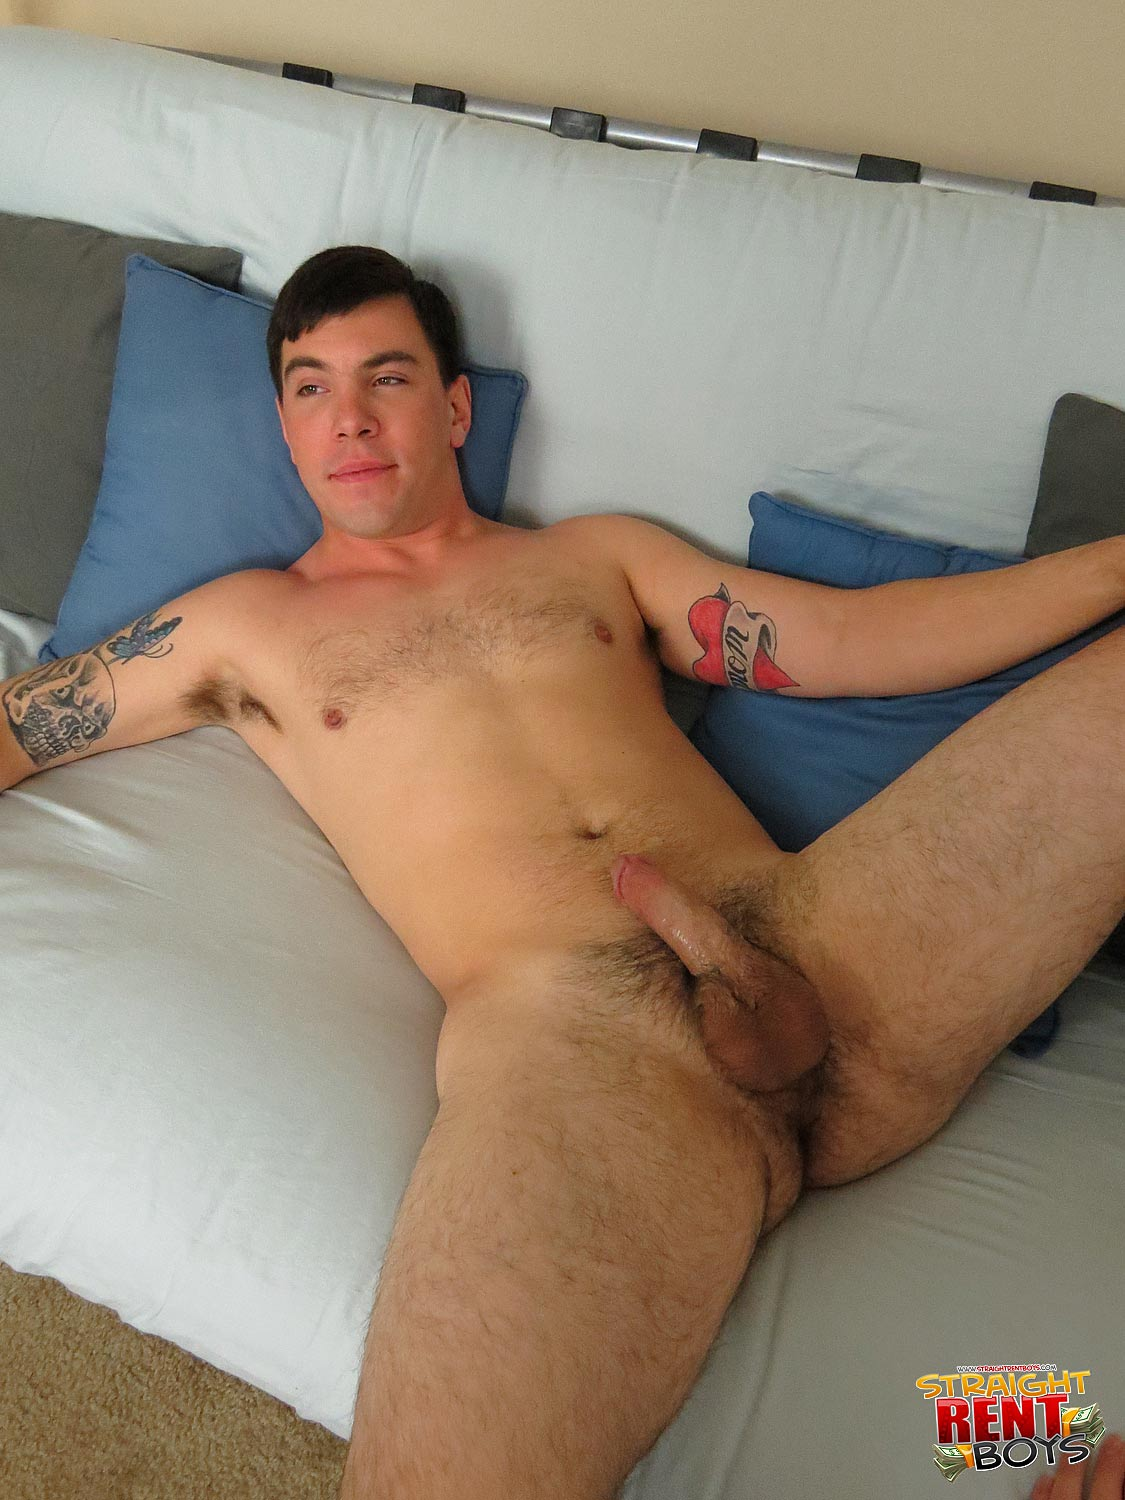 Straight-Rent-Boys-Ernie-and-Cody-Straight-Guys-Sucking-Cock-Amateur-Gay-Porn-11 Straight Young Beefy Stud Gets Blown By A Gay Hustler For Cash